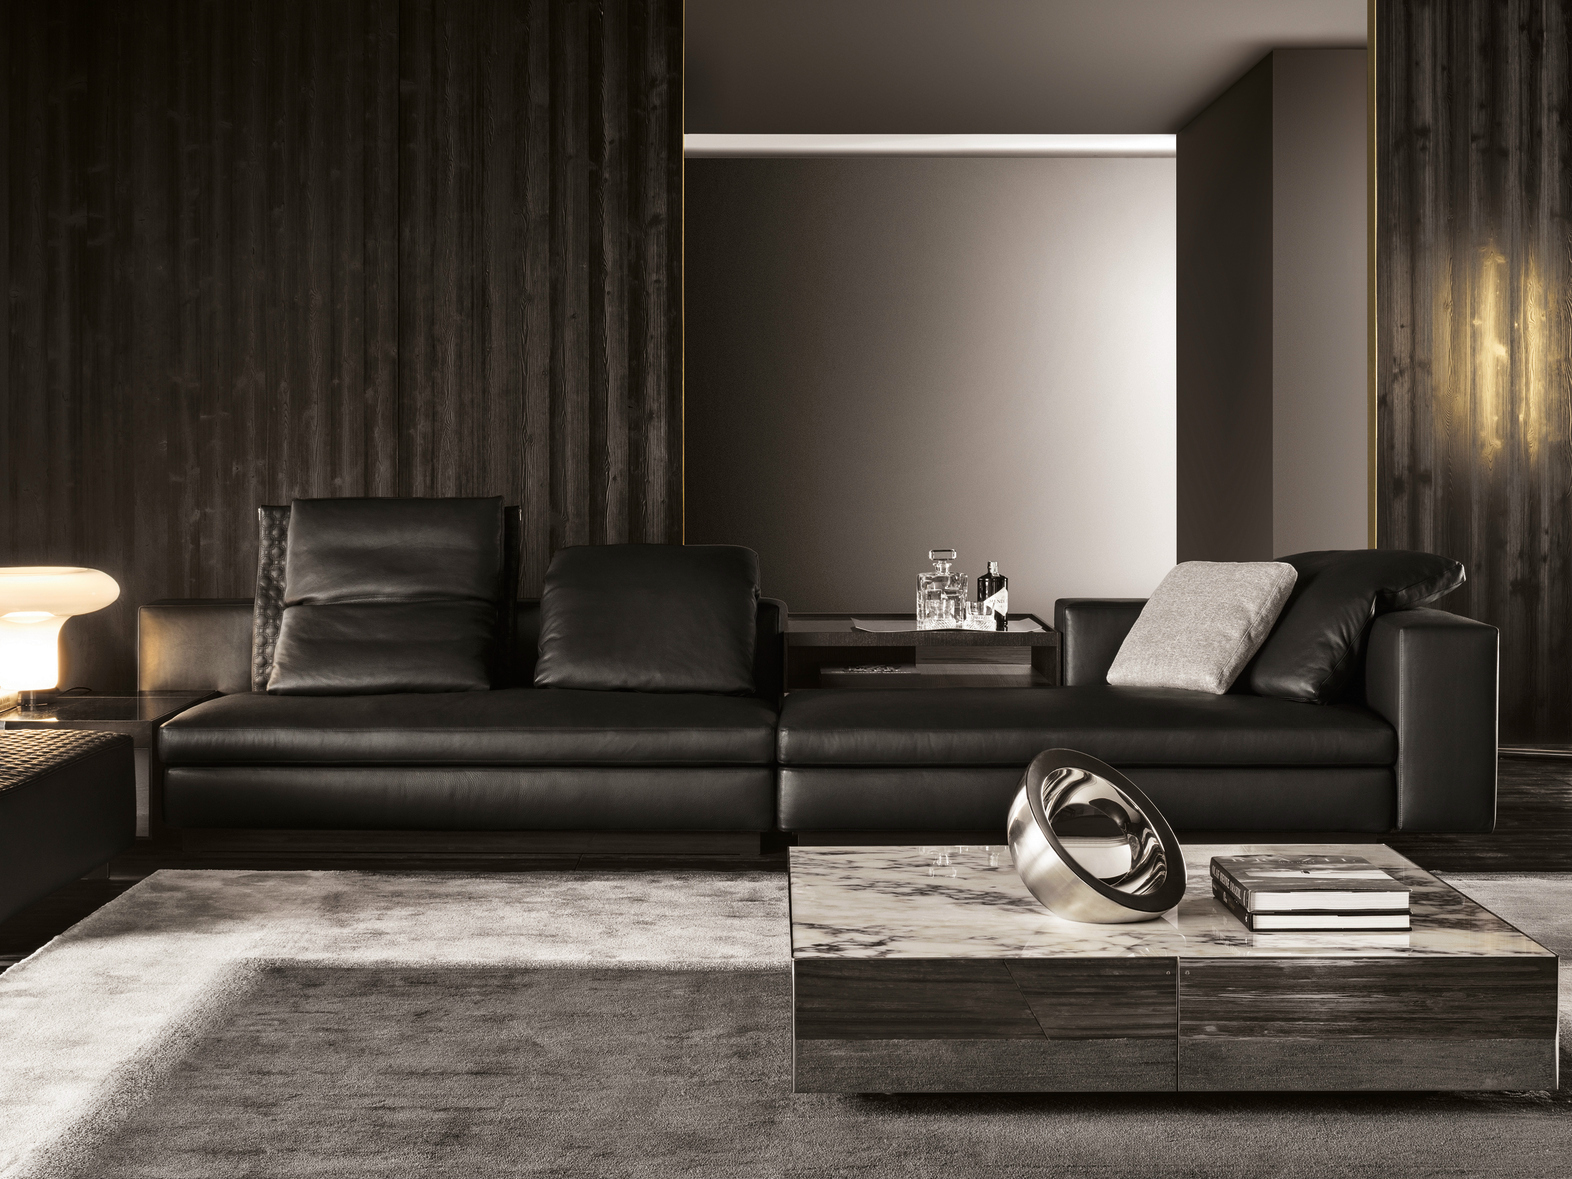 23 Italian Leather Sofas And Their Versatile Designs 954bartend Info